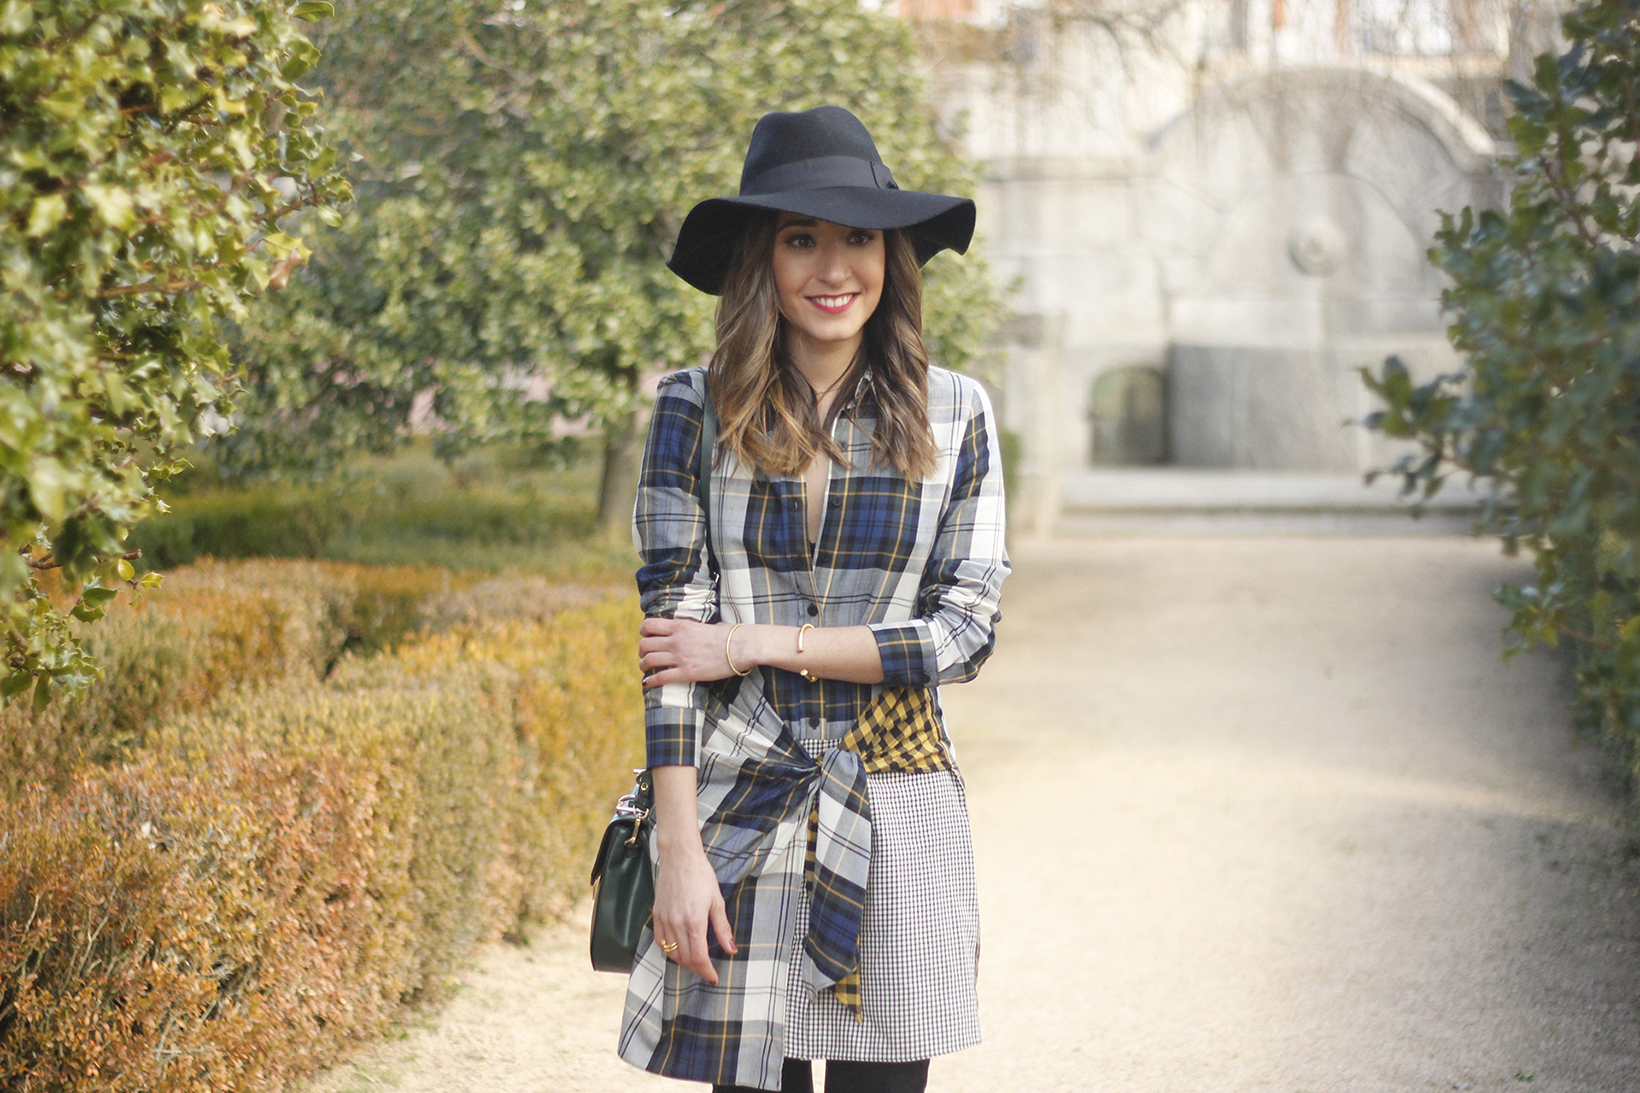 Tartan shirt dress zara over the knee boots mango hat green bag outfit fashion08